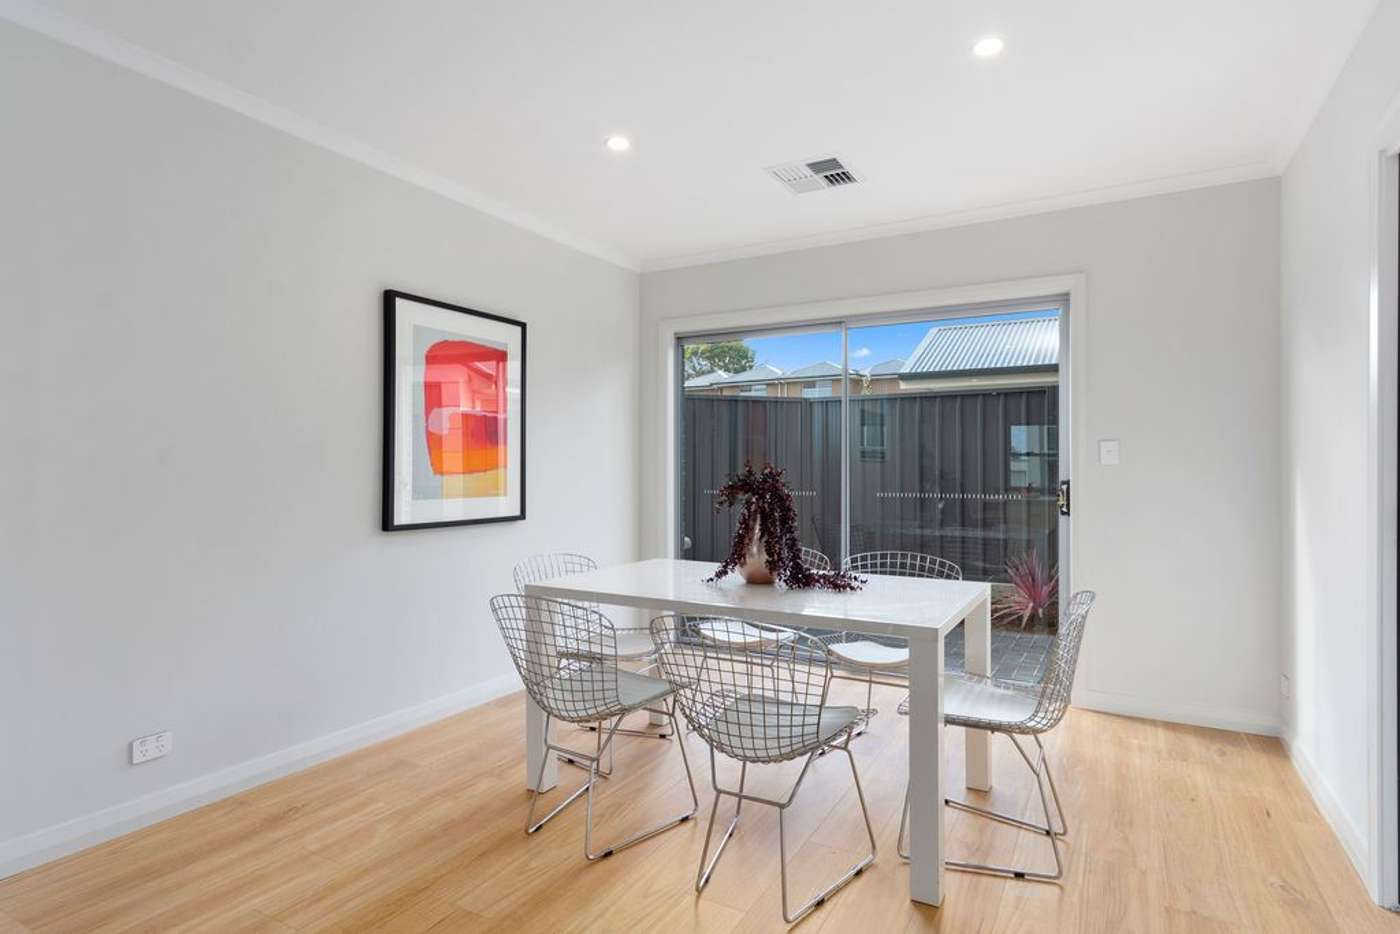 Sixth view of Homely townhouse listing, 1/24 - 26 Grazing Avenue, Morphett Vale SA 5162